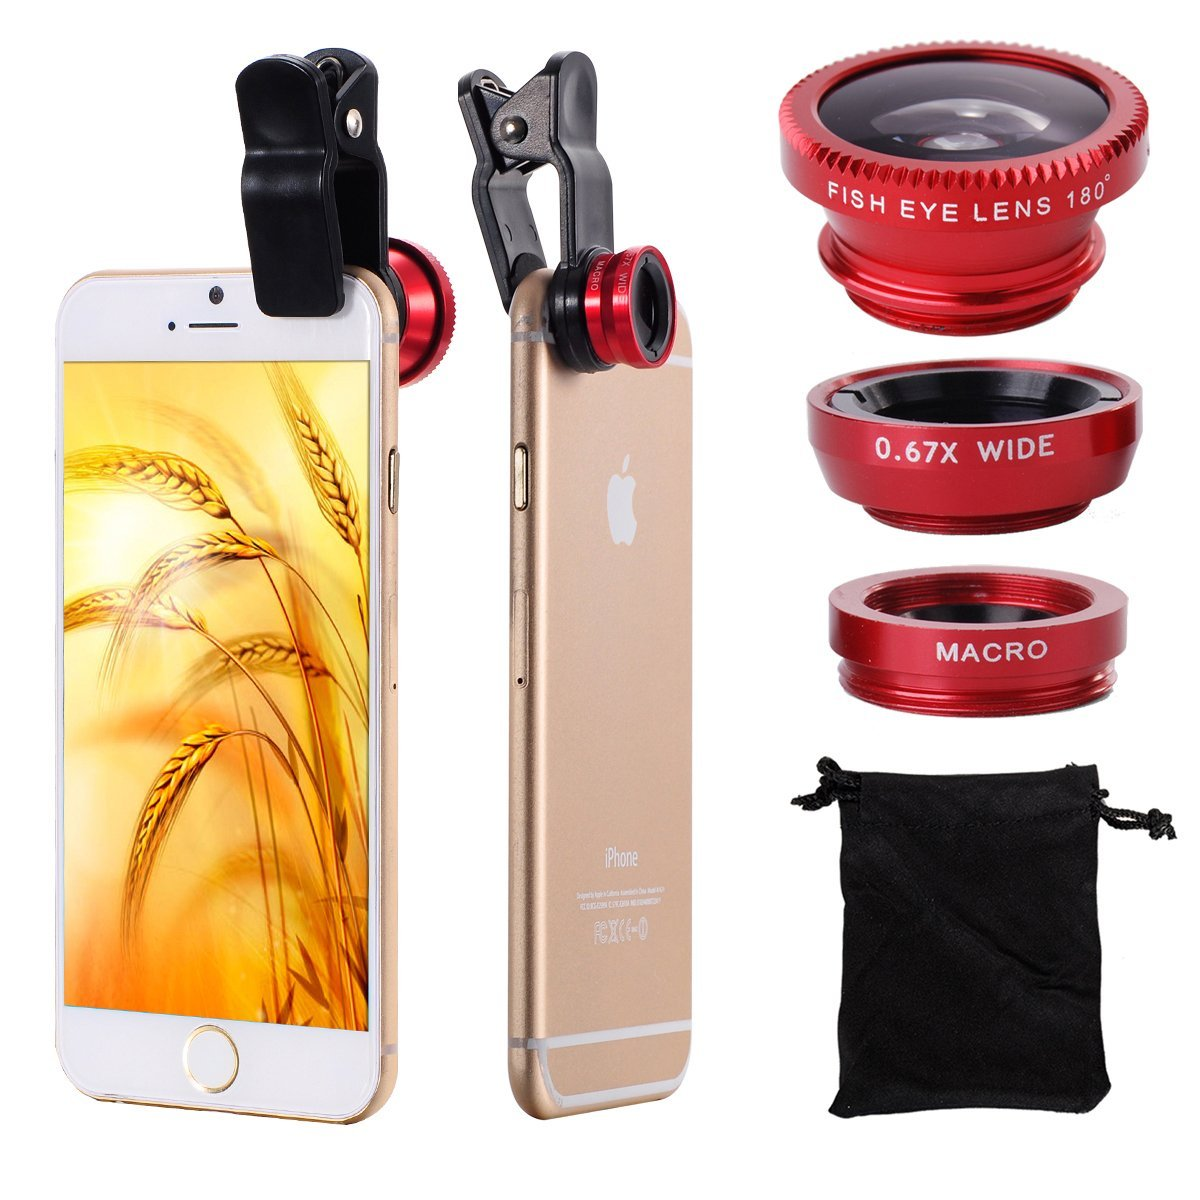 Universal-3IN1-Camera-Lens-Wide-Angle-Macro-Lens-Clip-on-Fish-Eye-For-Cellphone thumbnail 19